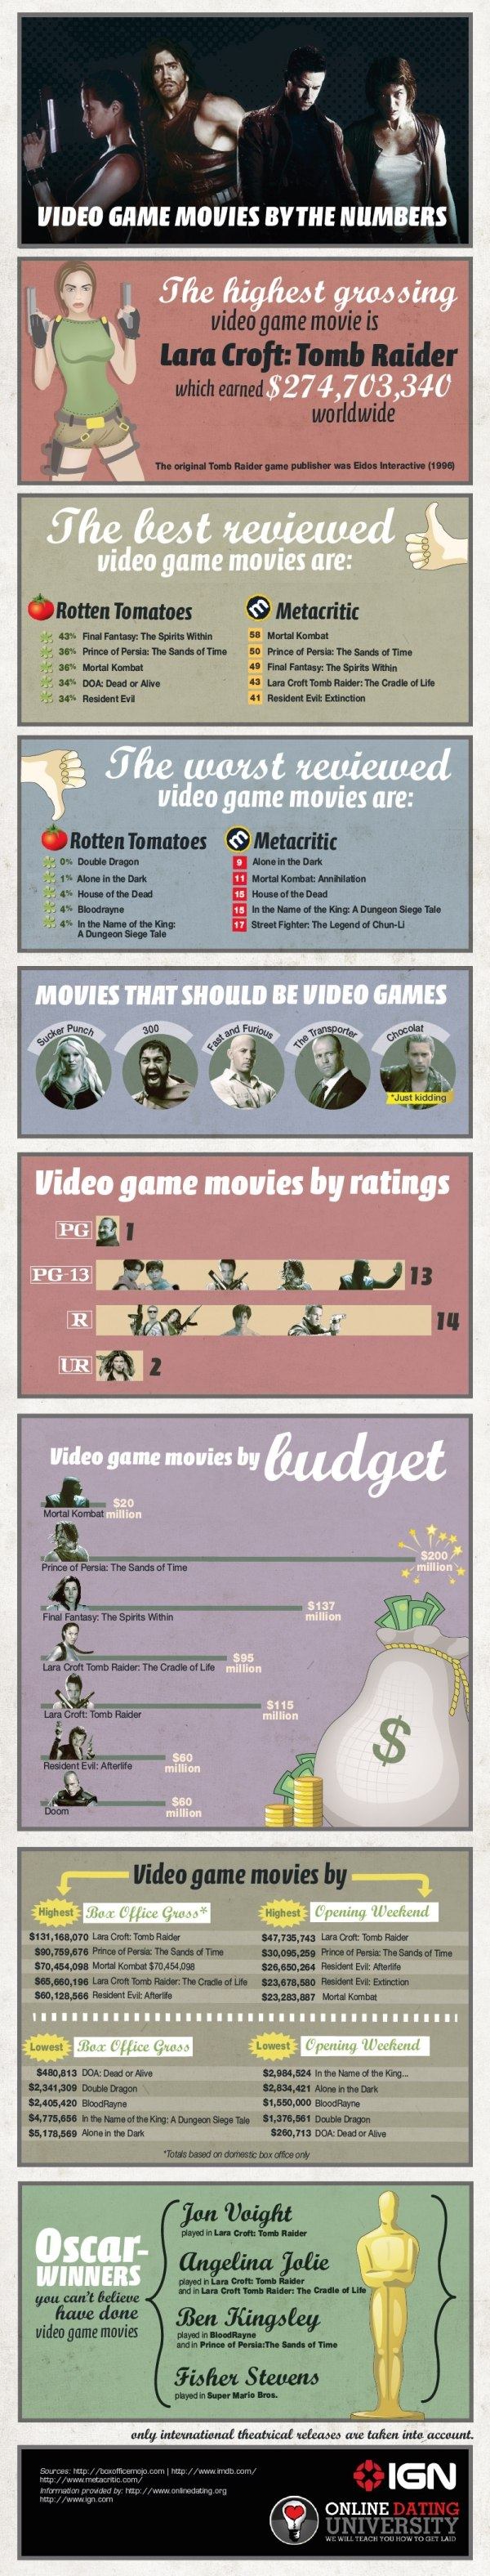 Video Game Movie Poster Infographic